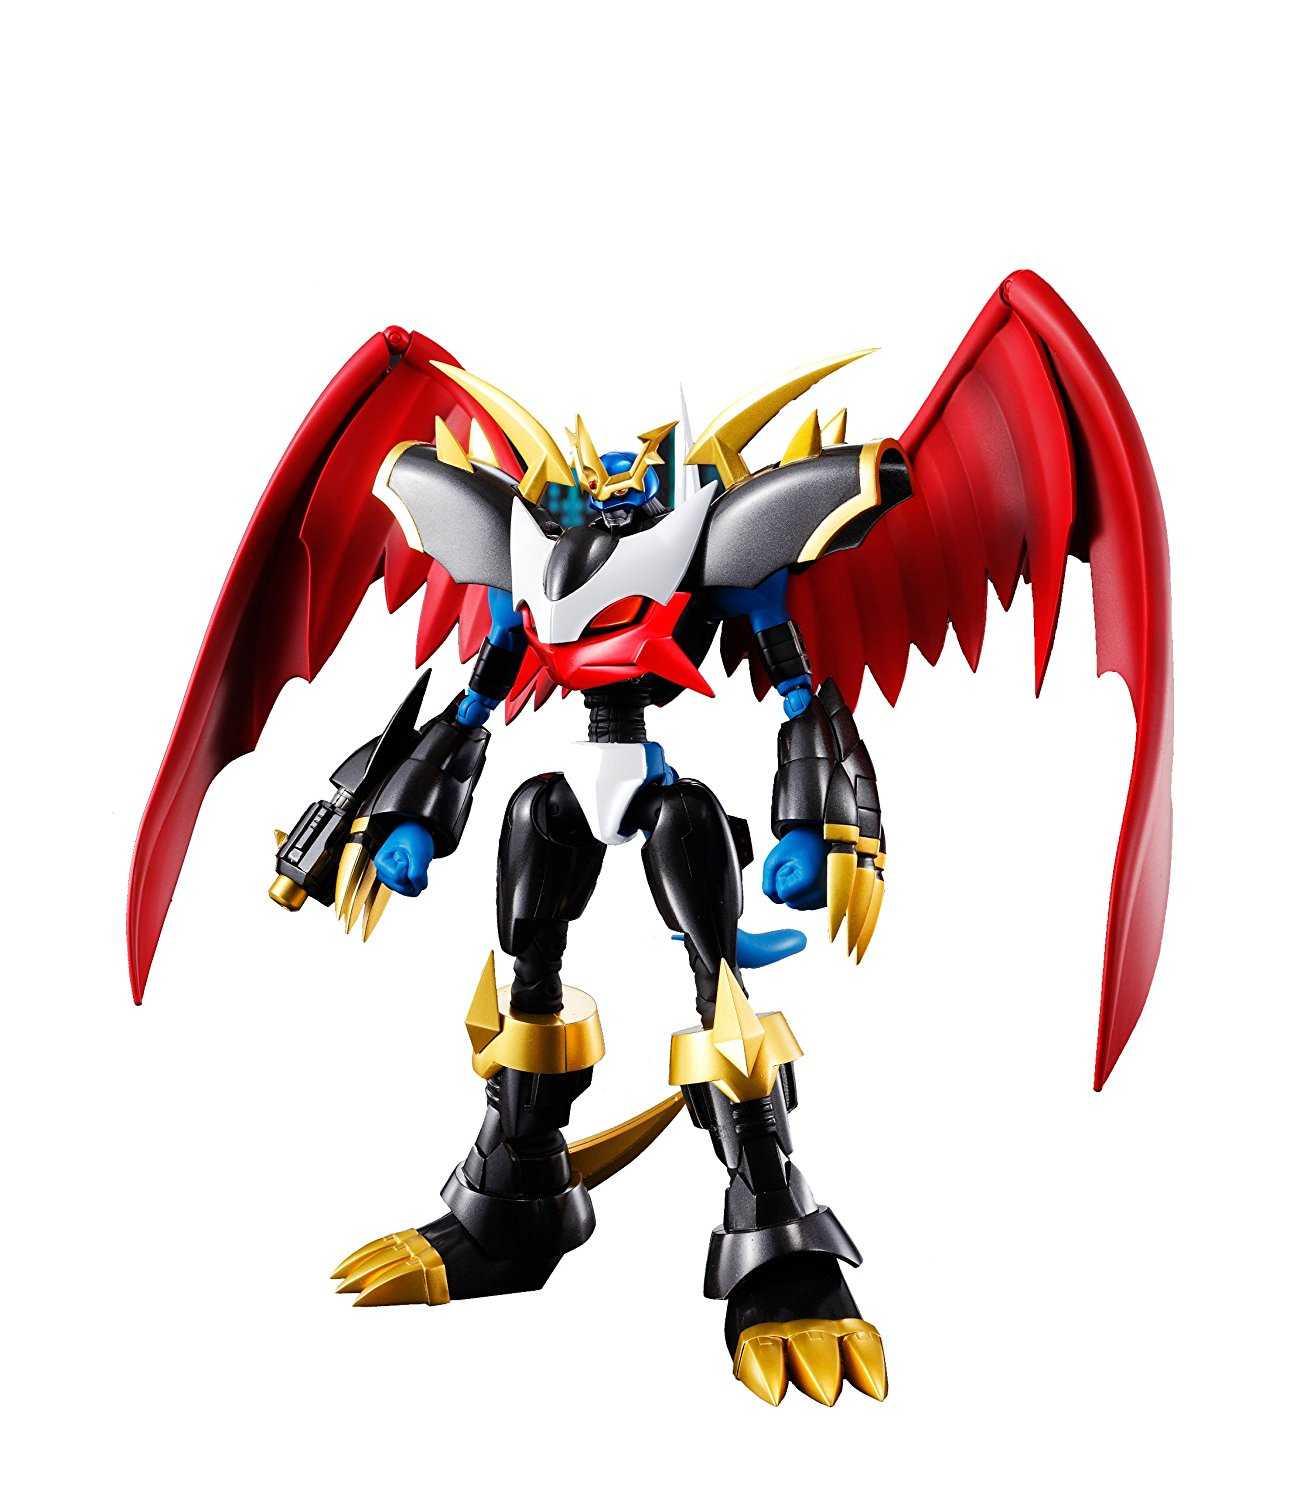 Bandai Tamashii Nations S.H. Figuarts Imperialdramon 'Digimon' Action Figure by